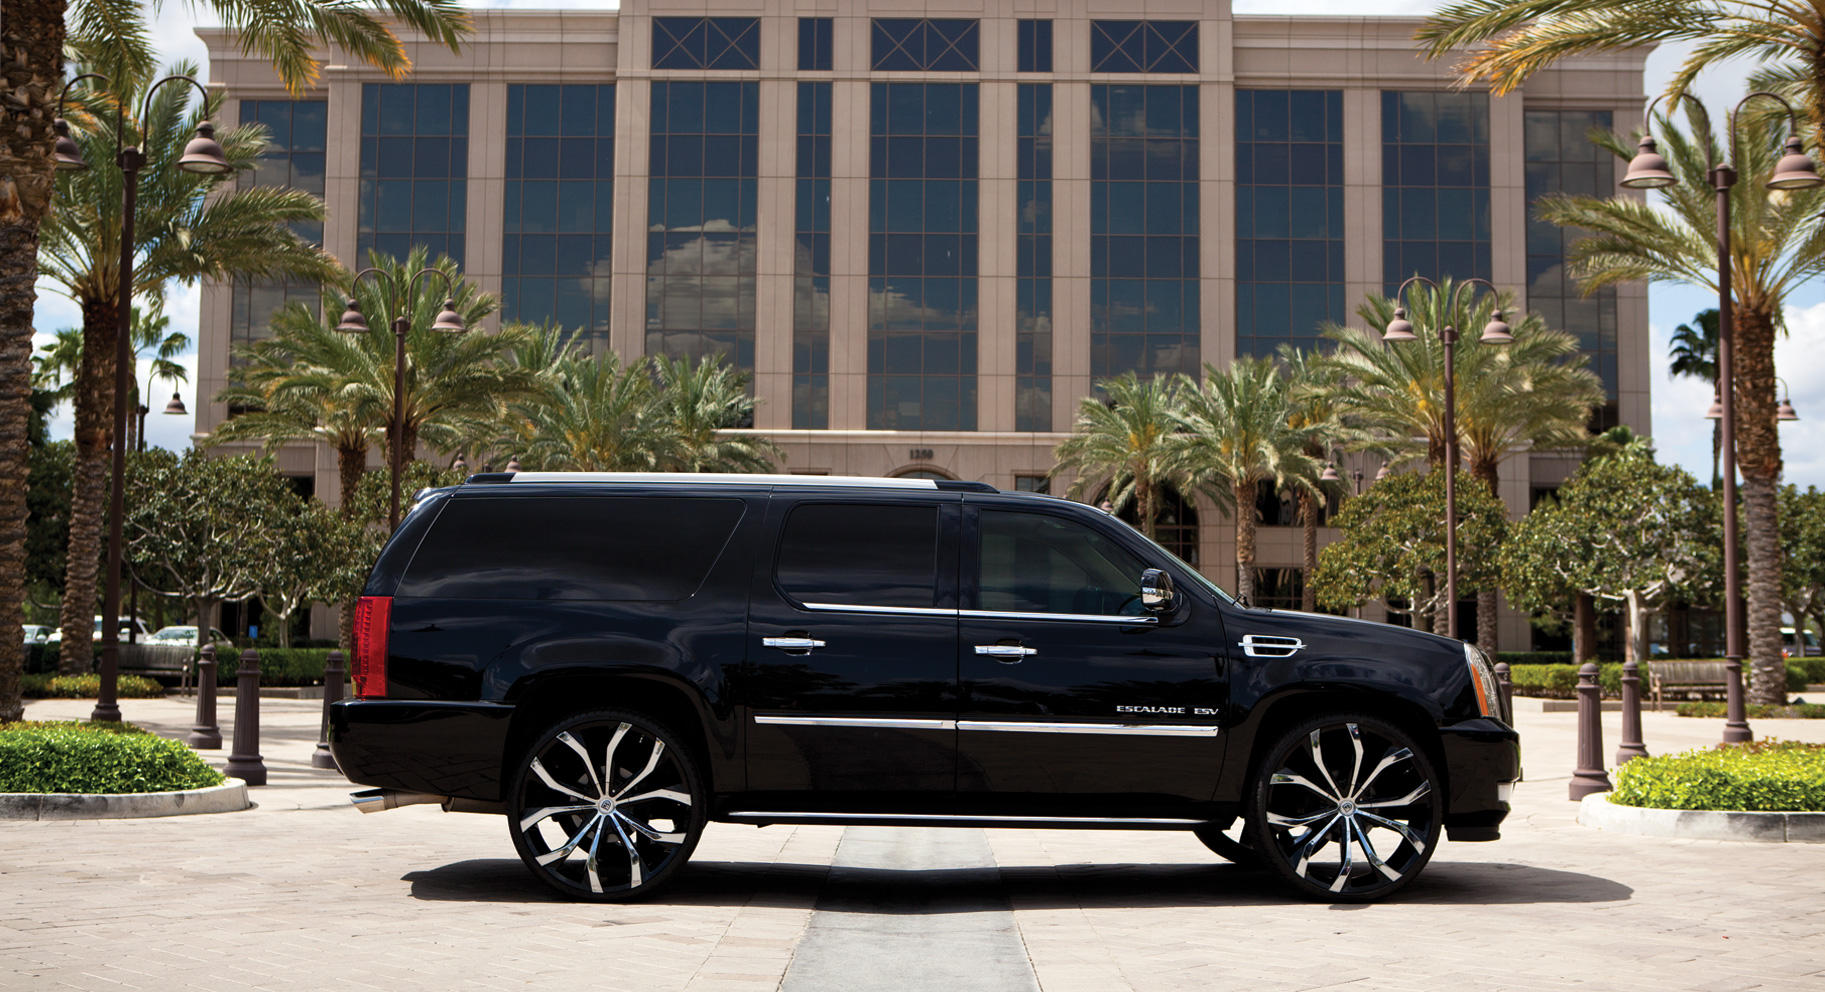 cadillac escalade The cadillac escalade is a suv great for luxury shoppers, towing, and large families carscom has the features of every escalade model year -- see if it's right for you.